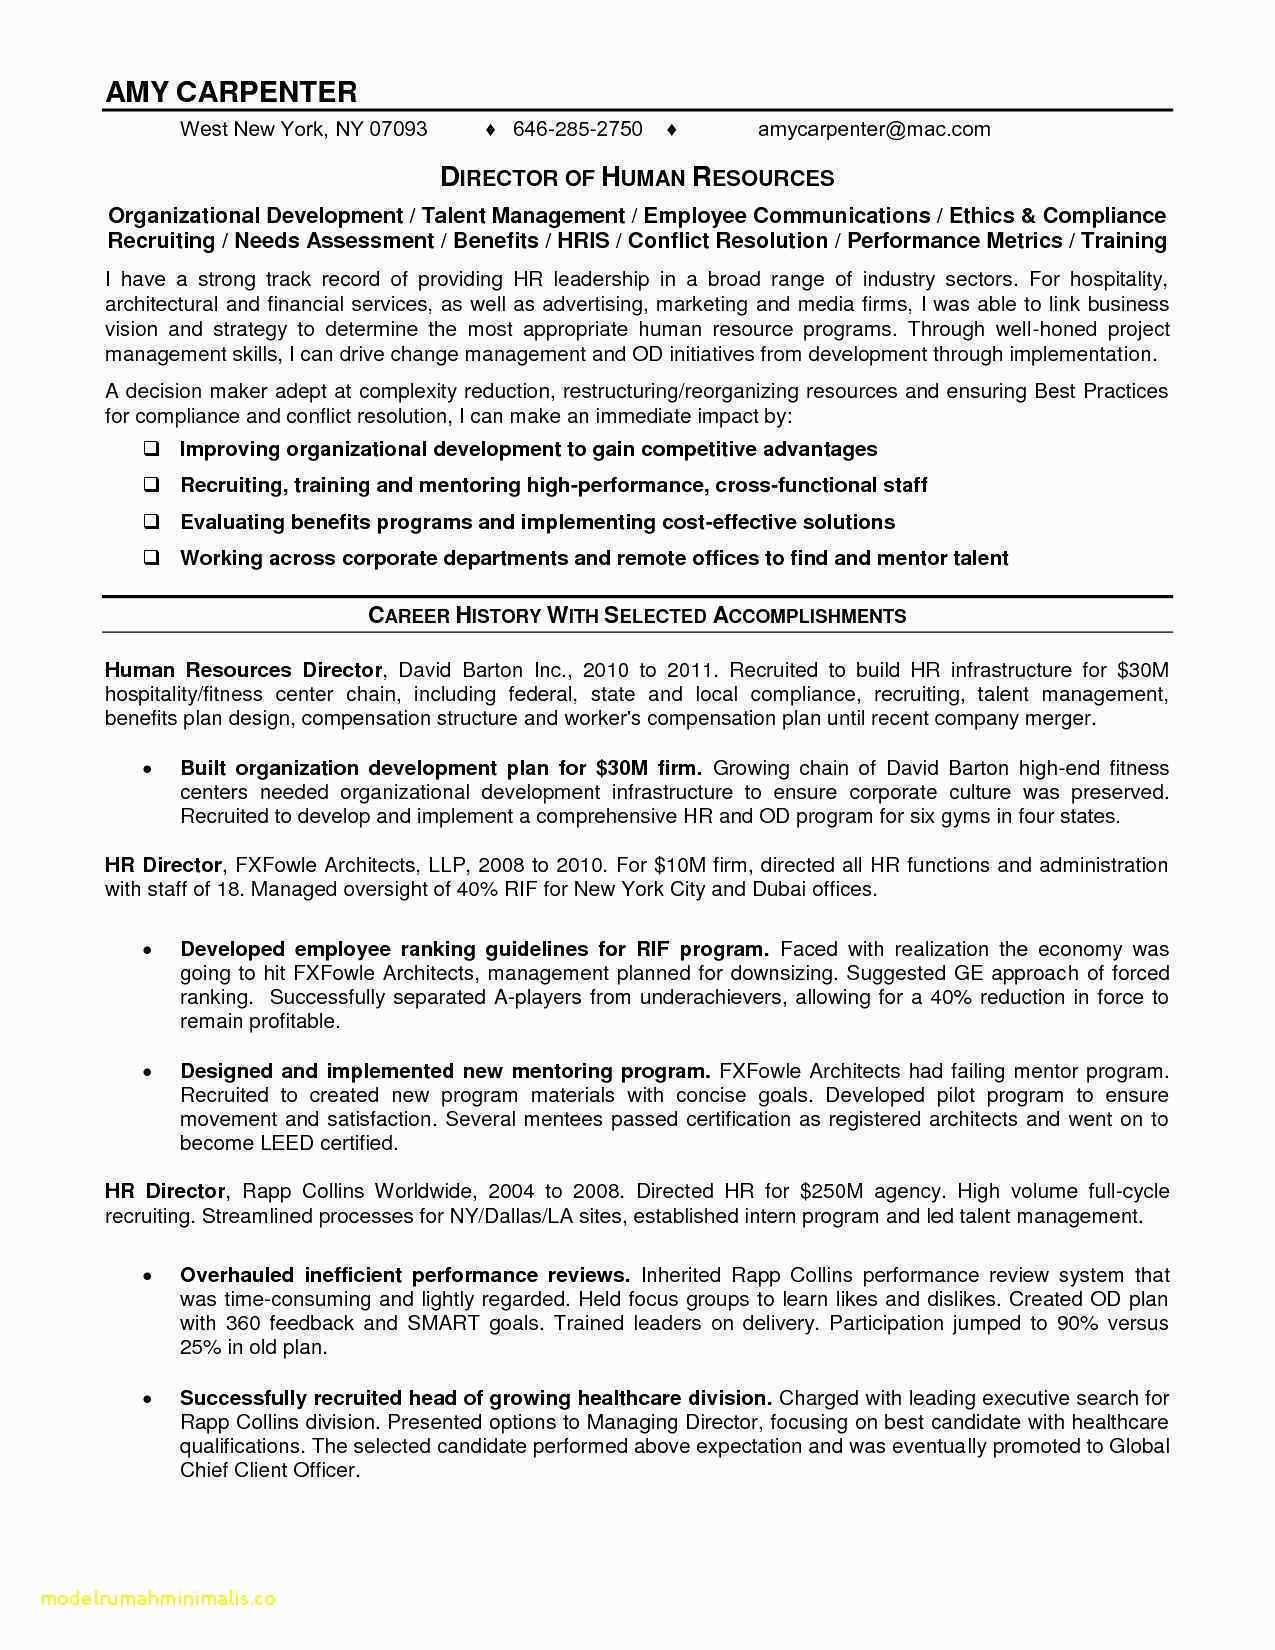 Teacher assistant Resume with No Experience - Sample Resume for Preschool Teacher assistant Luxury 50 New Teacher